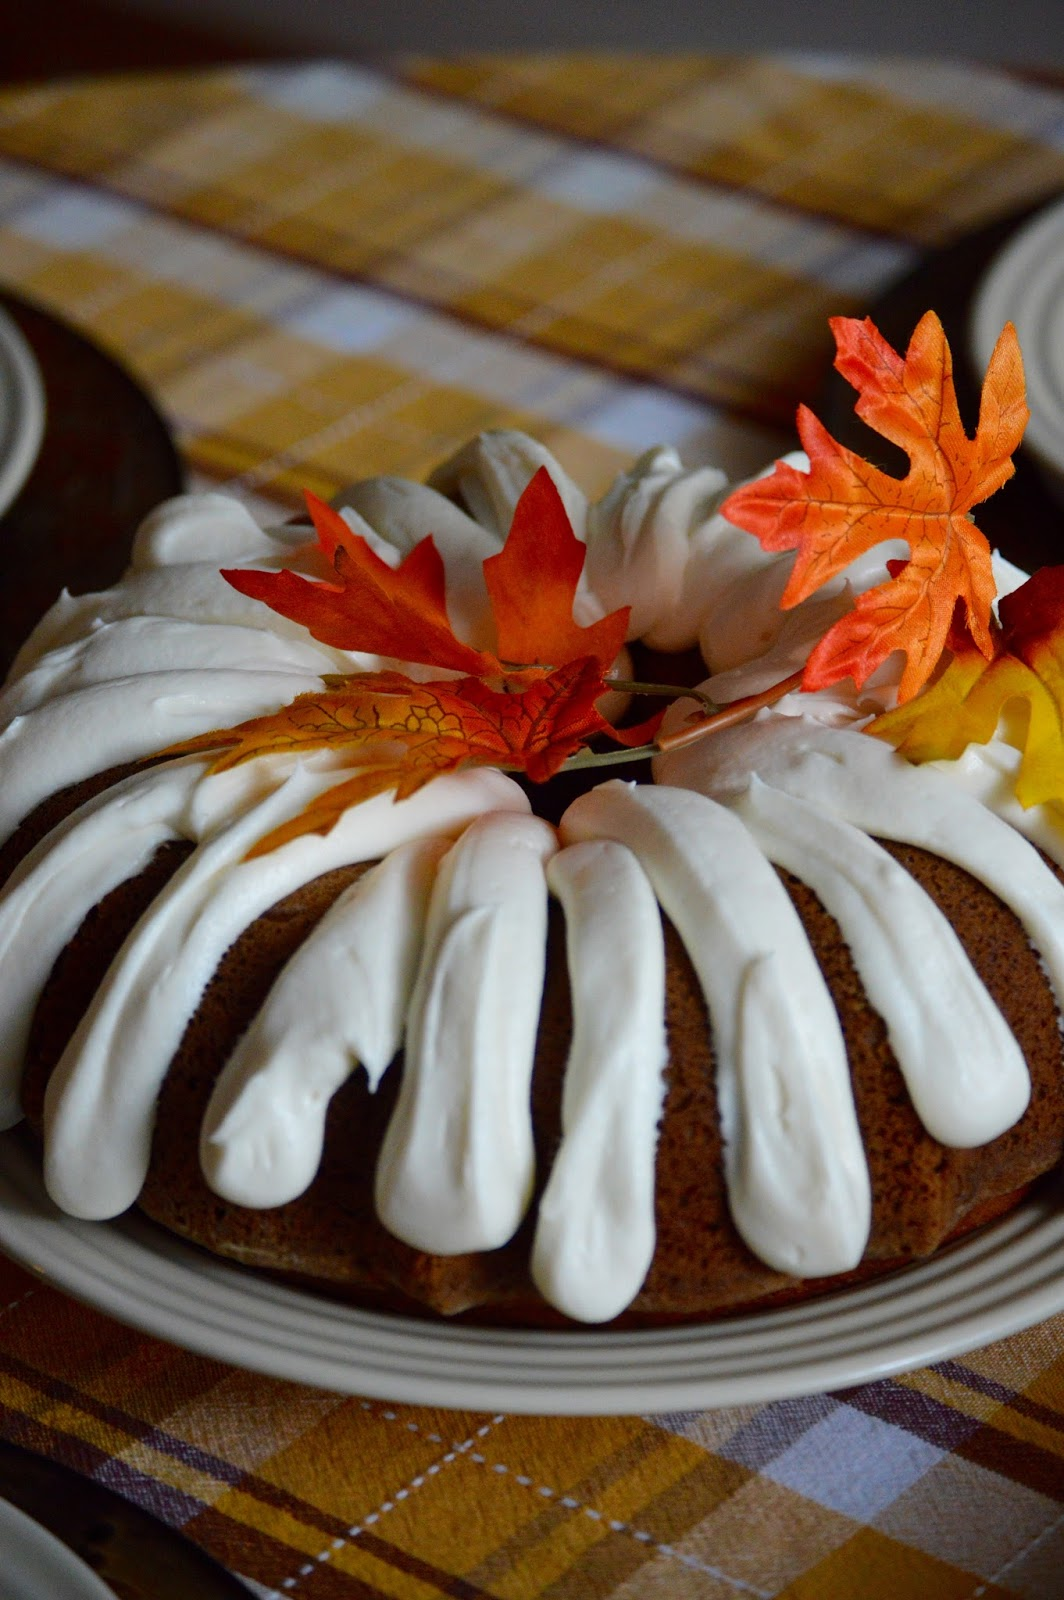 How To Frost A Bundt Cake With Canned Frosting